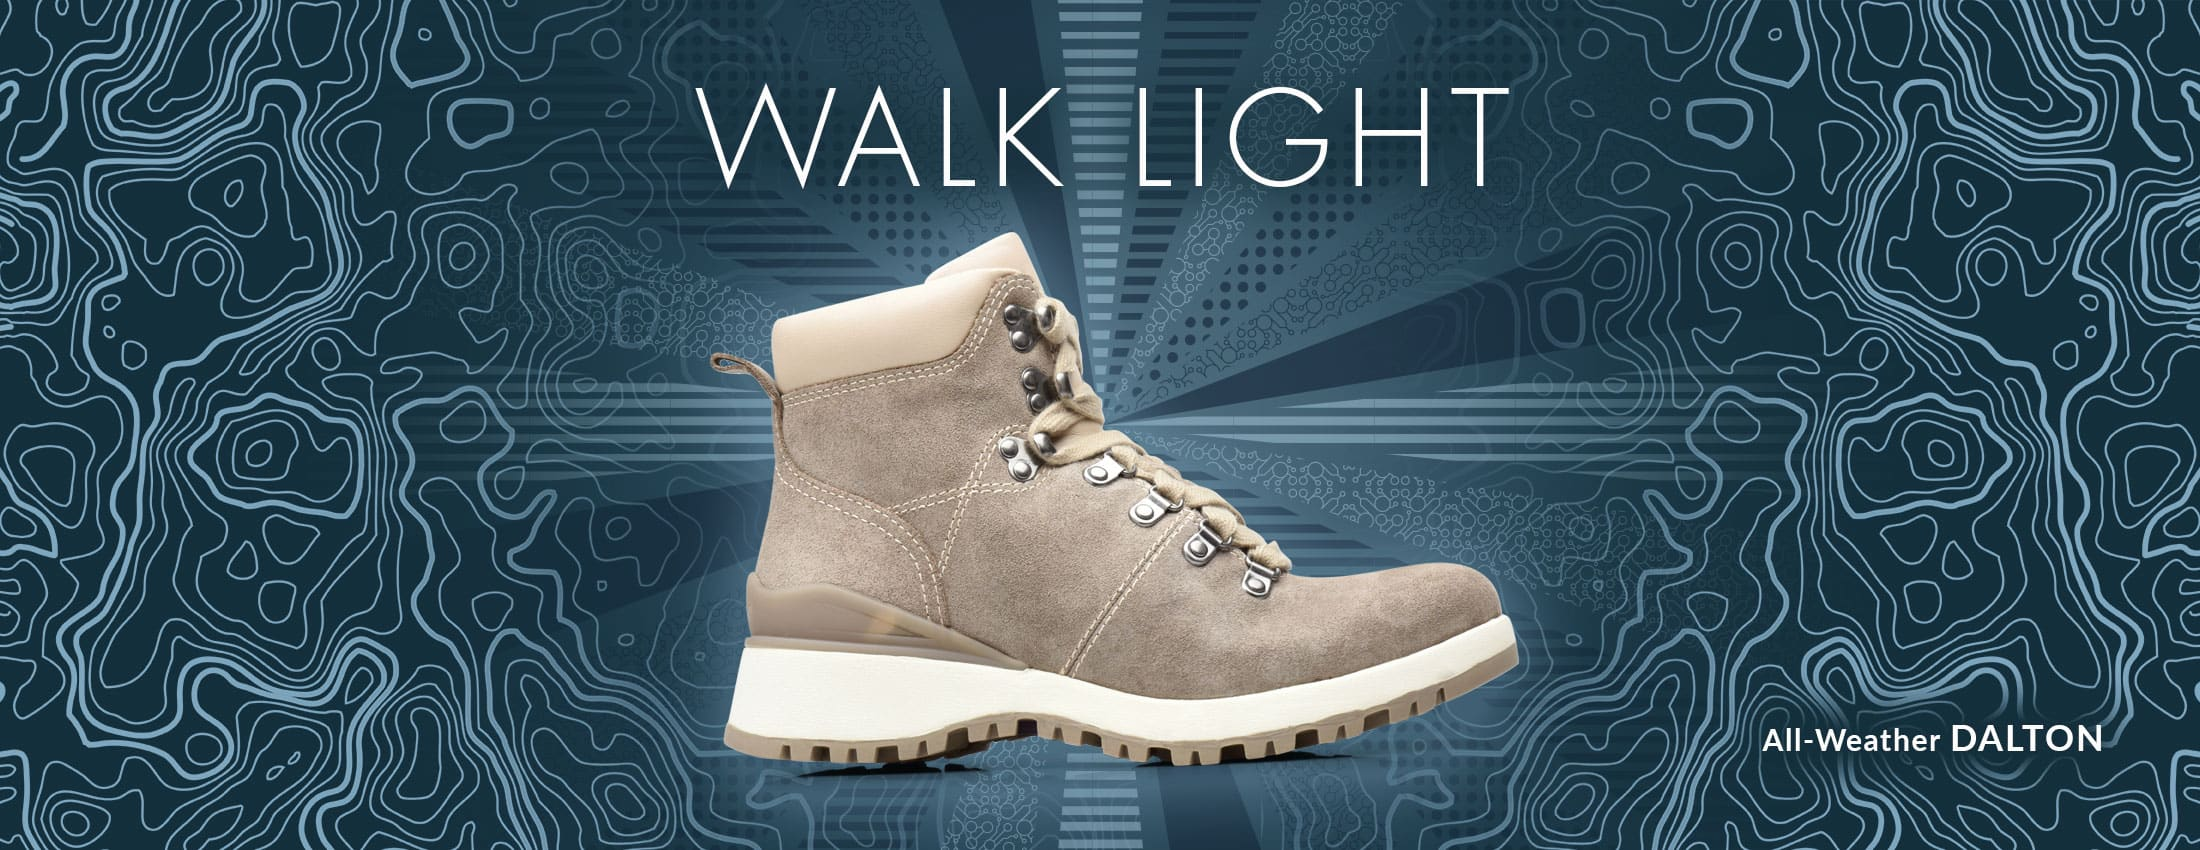 Walk Light. Featured style: All-Weather Dalton boot, shown in light grey-cream.  Shop Dalton now